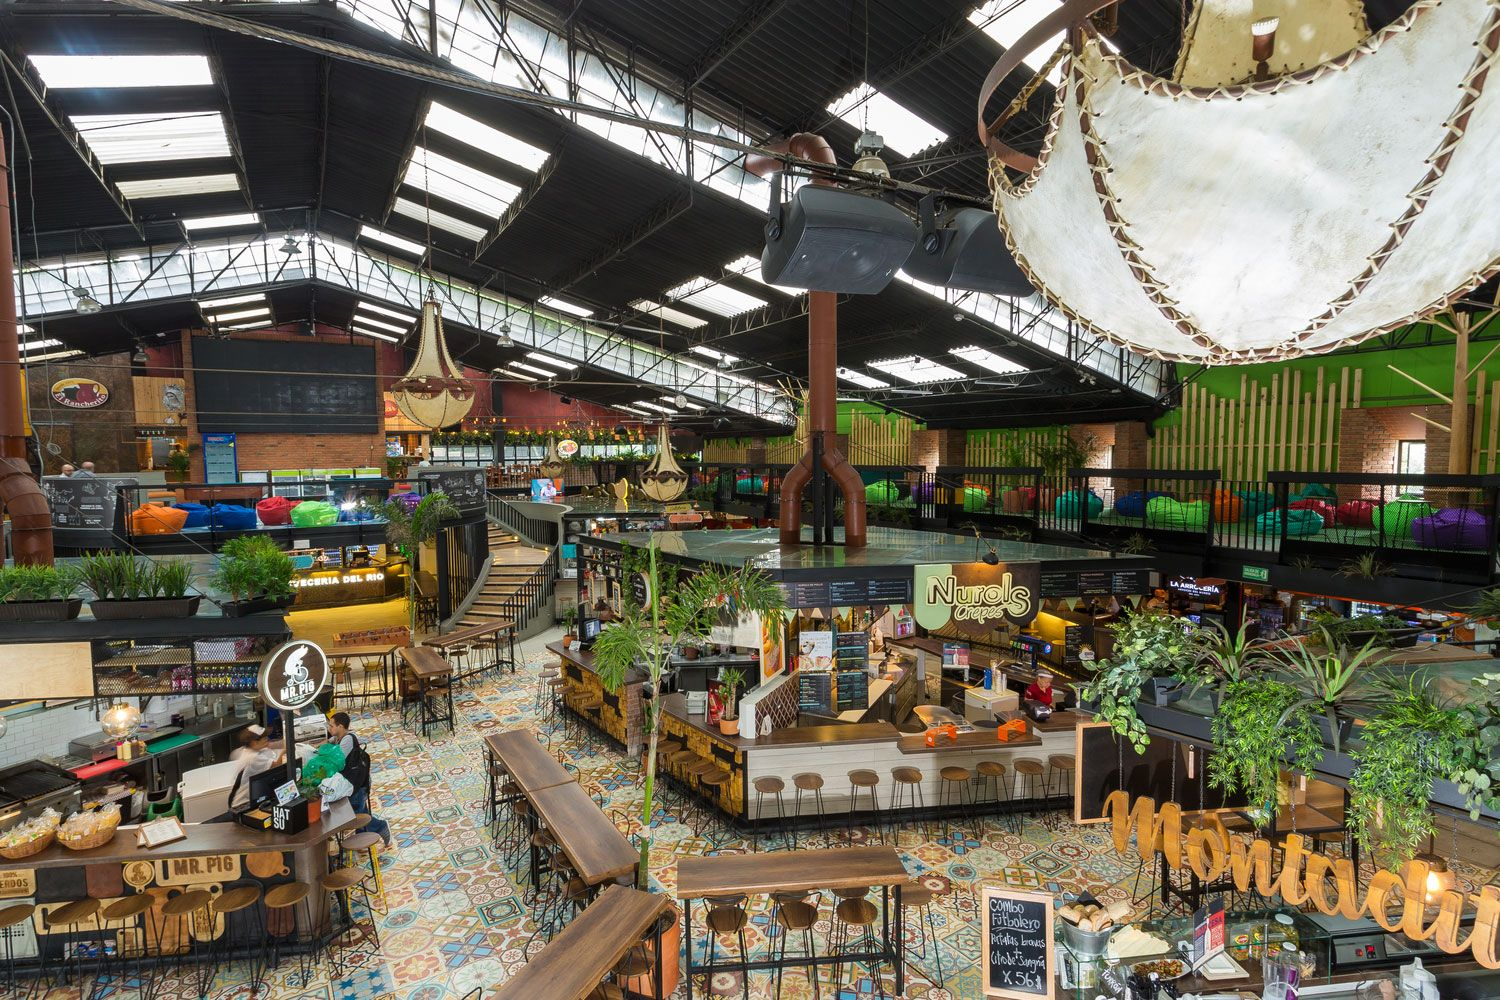 Gastronomic Market In The City Of Medellin Colombia Designed By